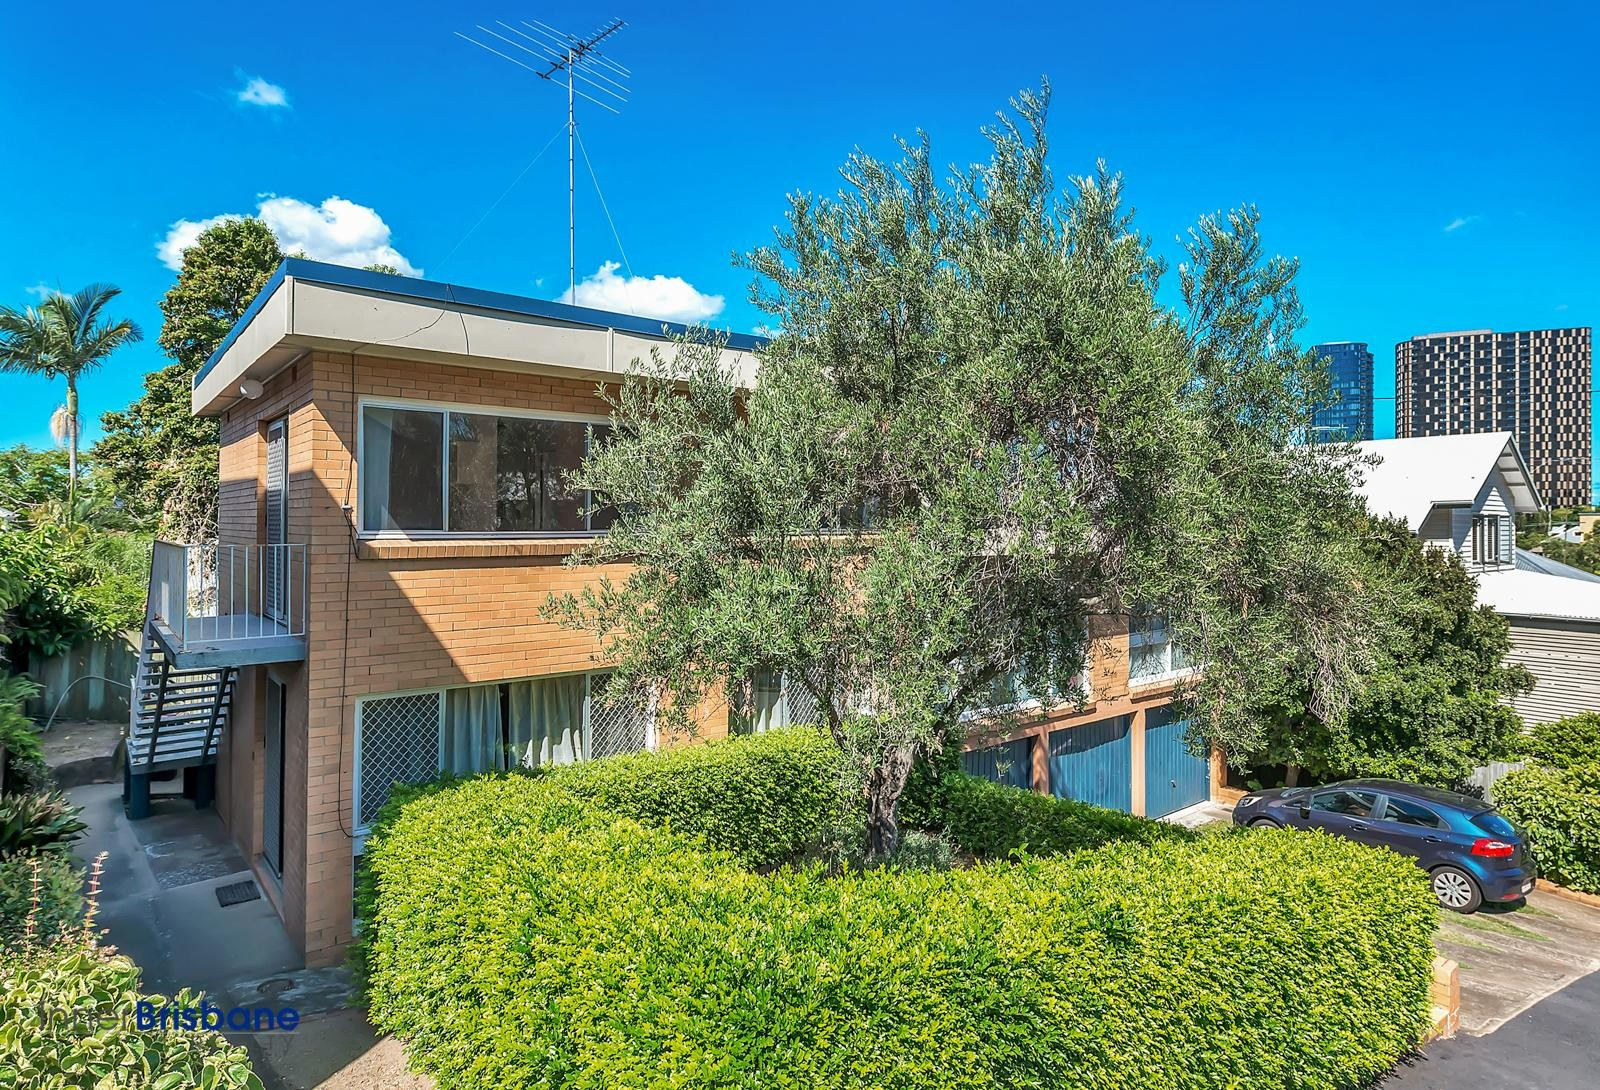 Top of the hill unfurnished spring hill id 344 - 2 bedroom units for rent brisbane ...